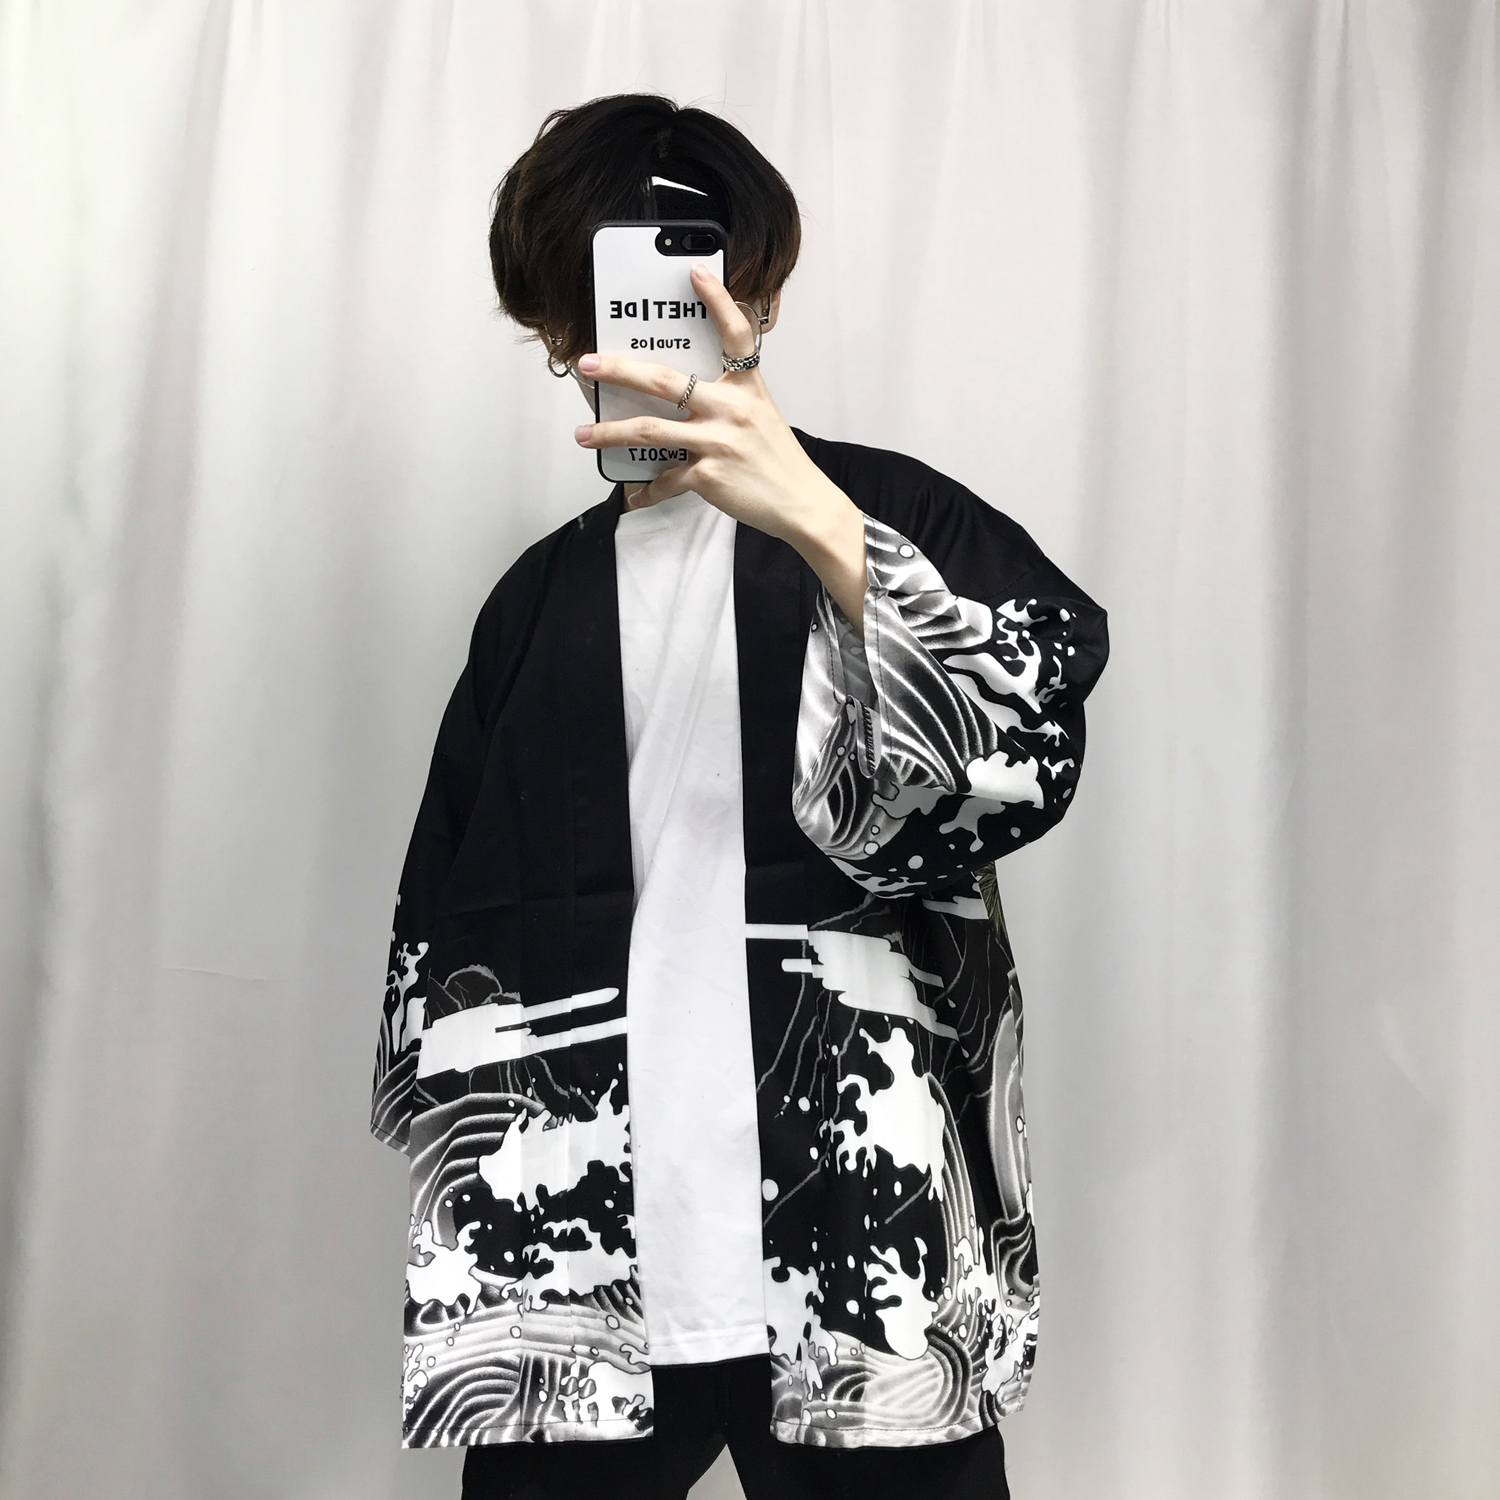 2018 summer mens kimono japanese clothes streetwear casual kimonos jackets harajuku japan style cardigan outwear